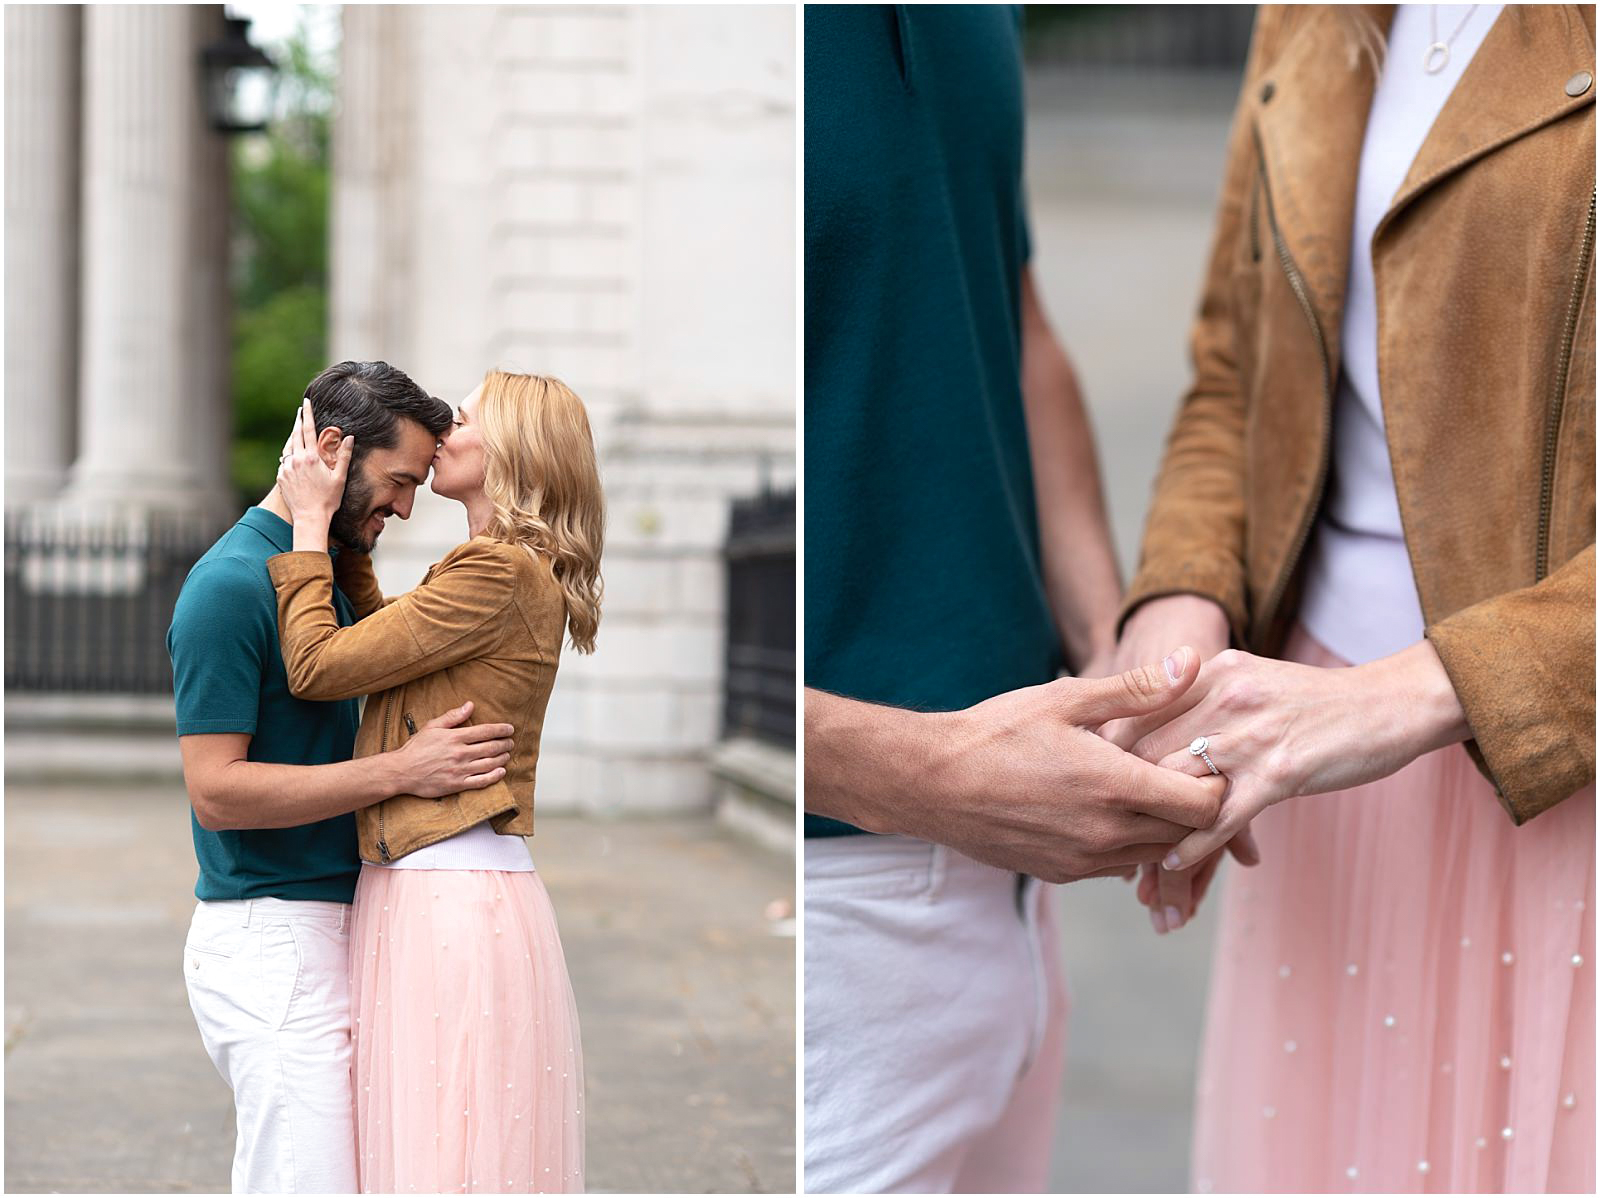 London couple engagement photography st pauls cathedral with engagement ring